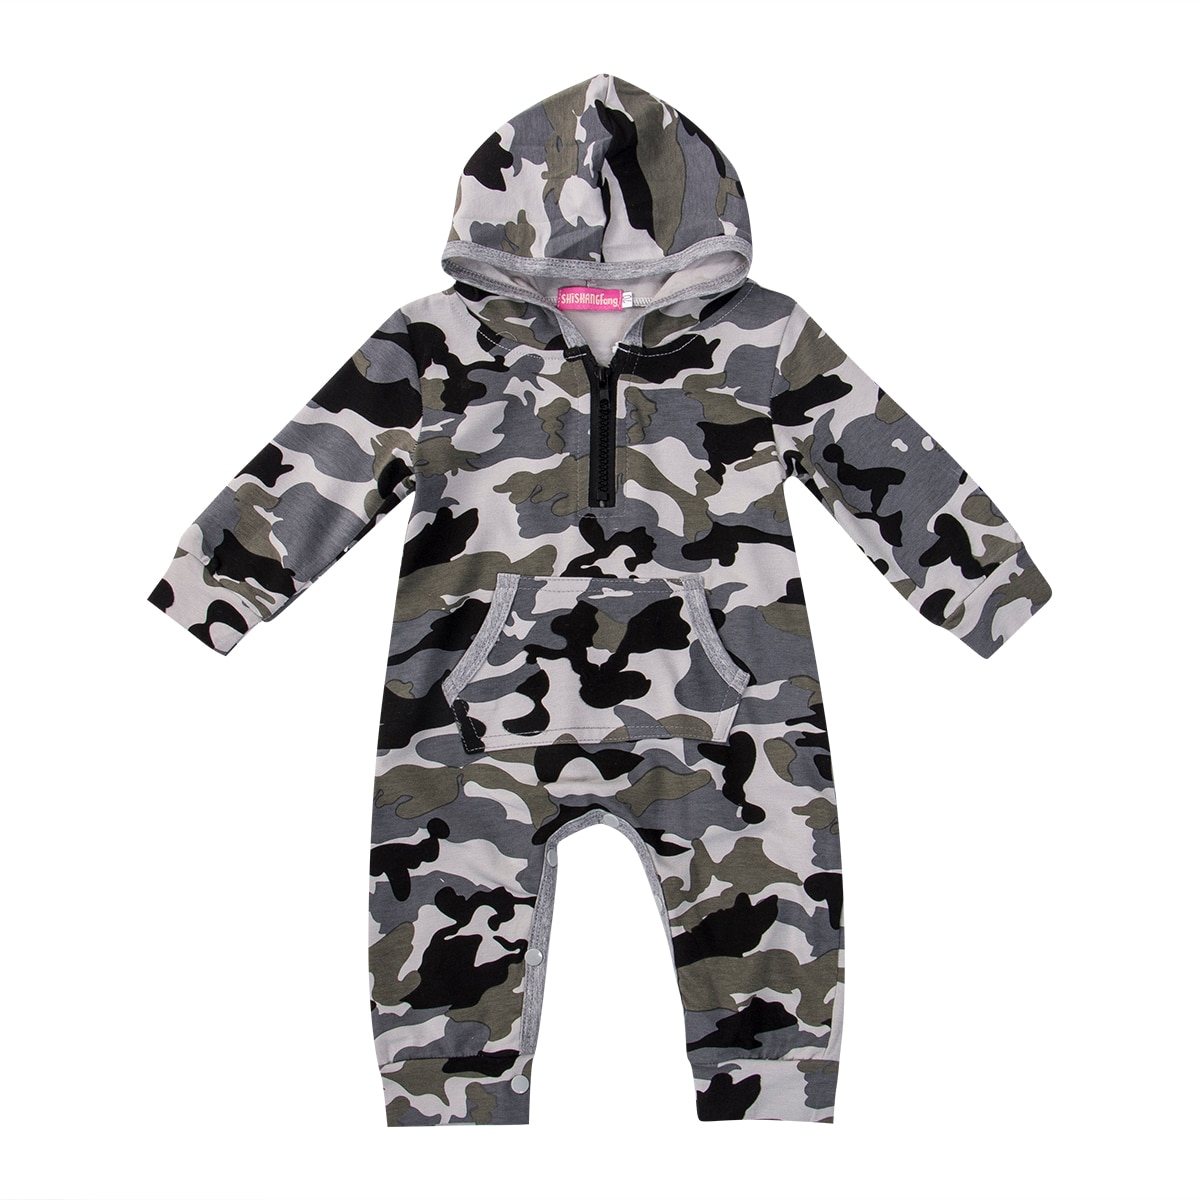 Toddler Baby Boy Hooded Boy Camouflage Romper Newborn Baby Camo Long Sleeve Bodysuit Infant Jumpsuit Boys Baby Outfit Warm 0-24M